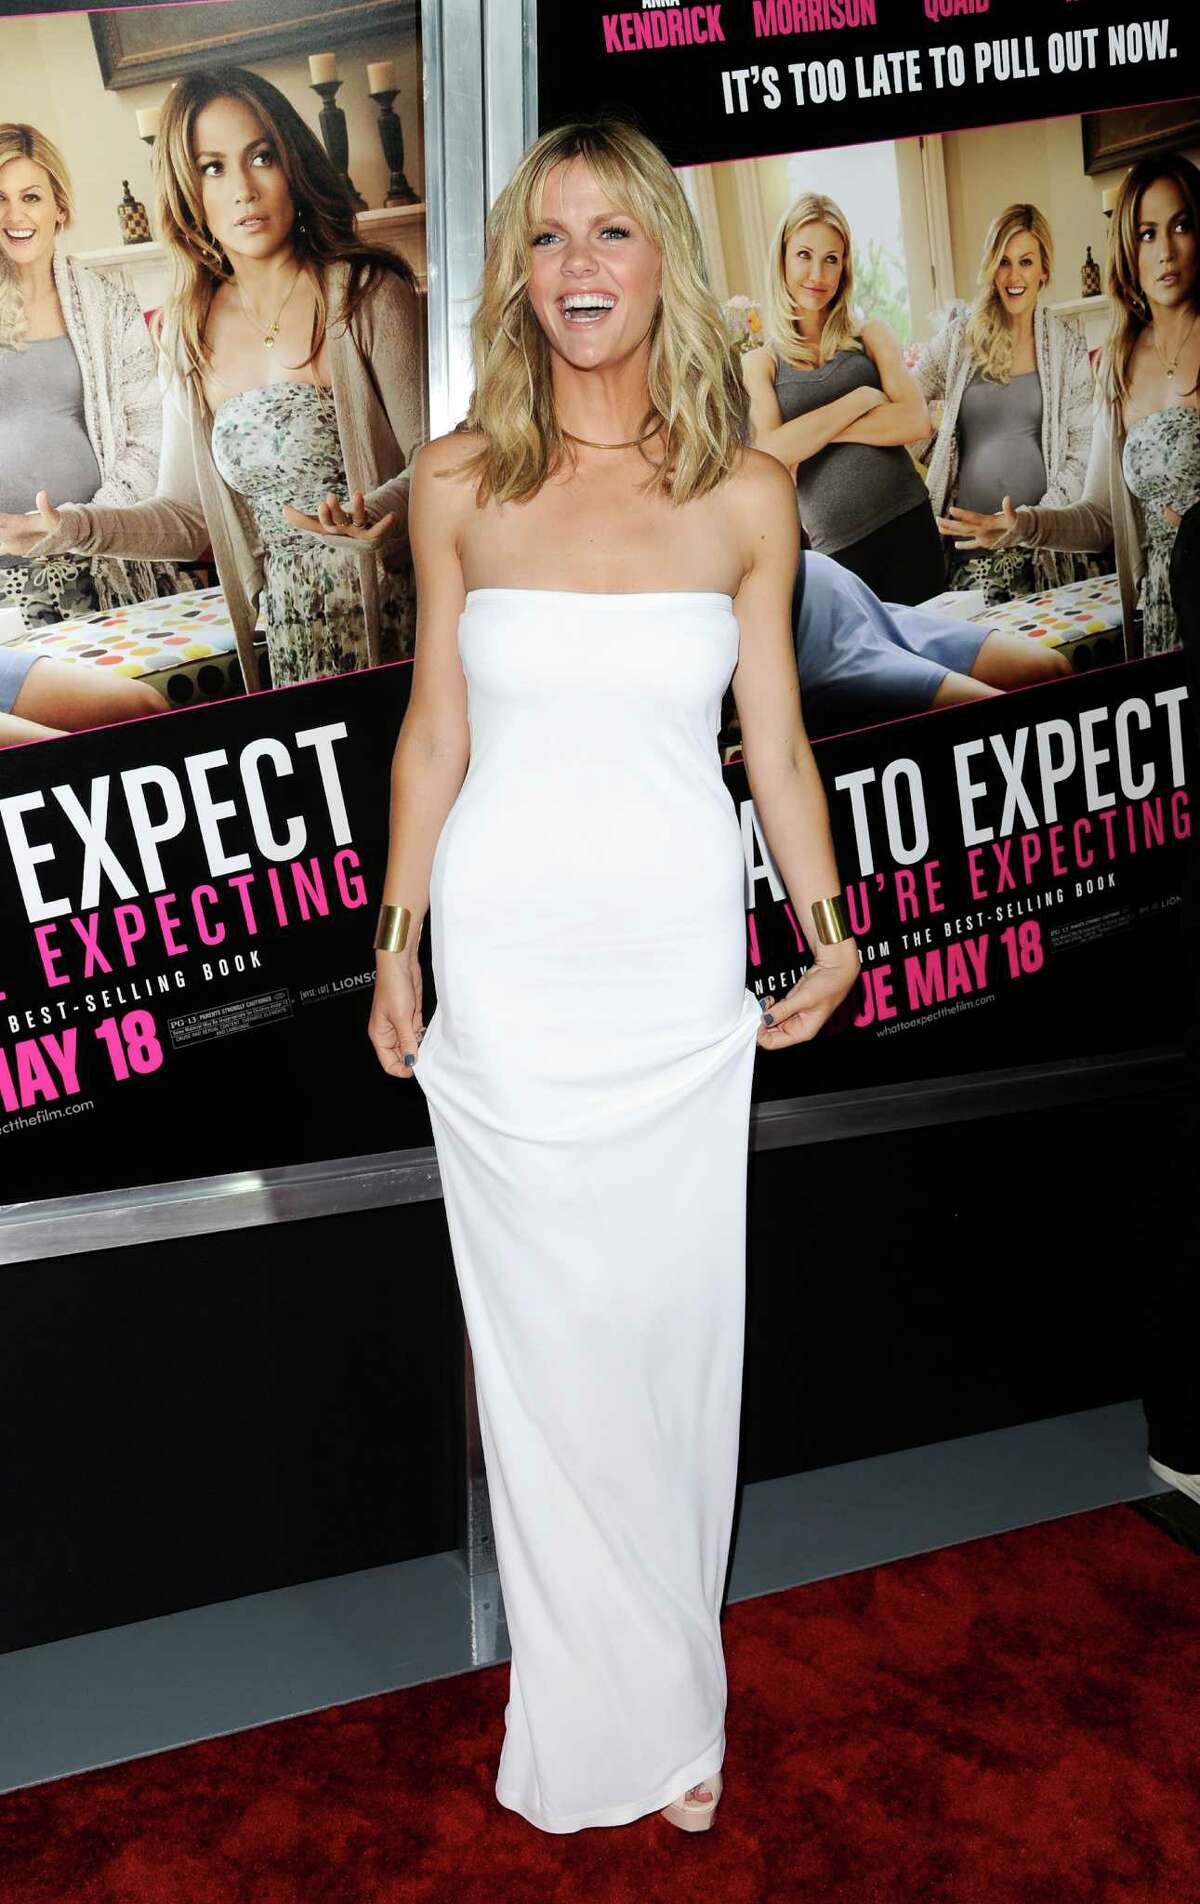 Actress Brooklyn Decker attends the premiere of